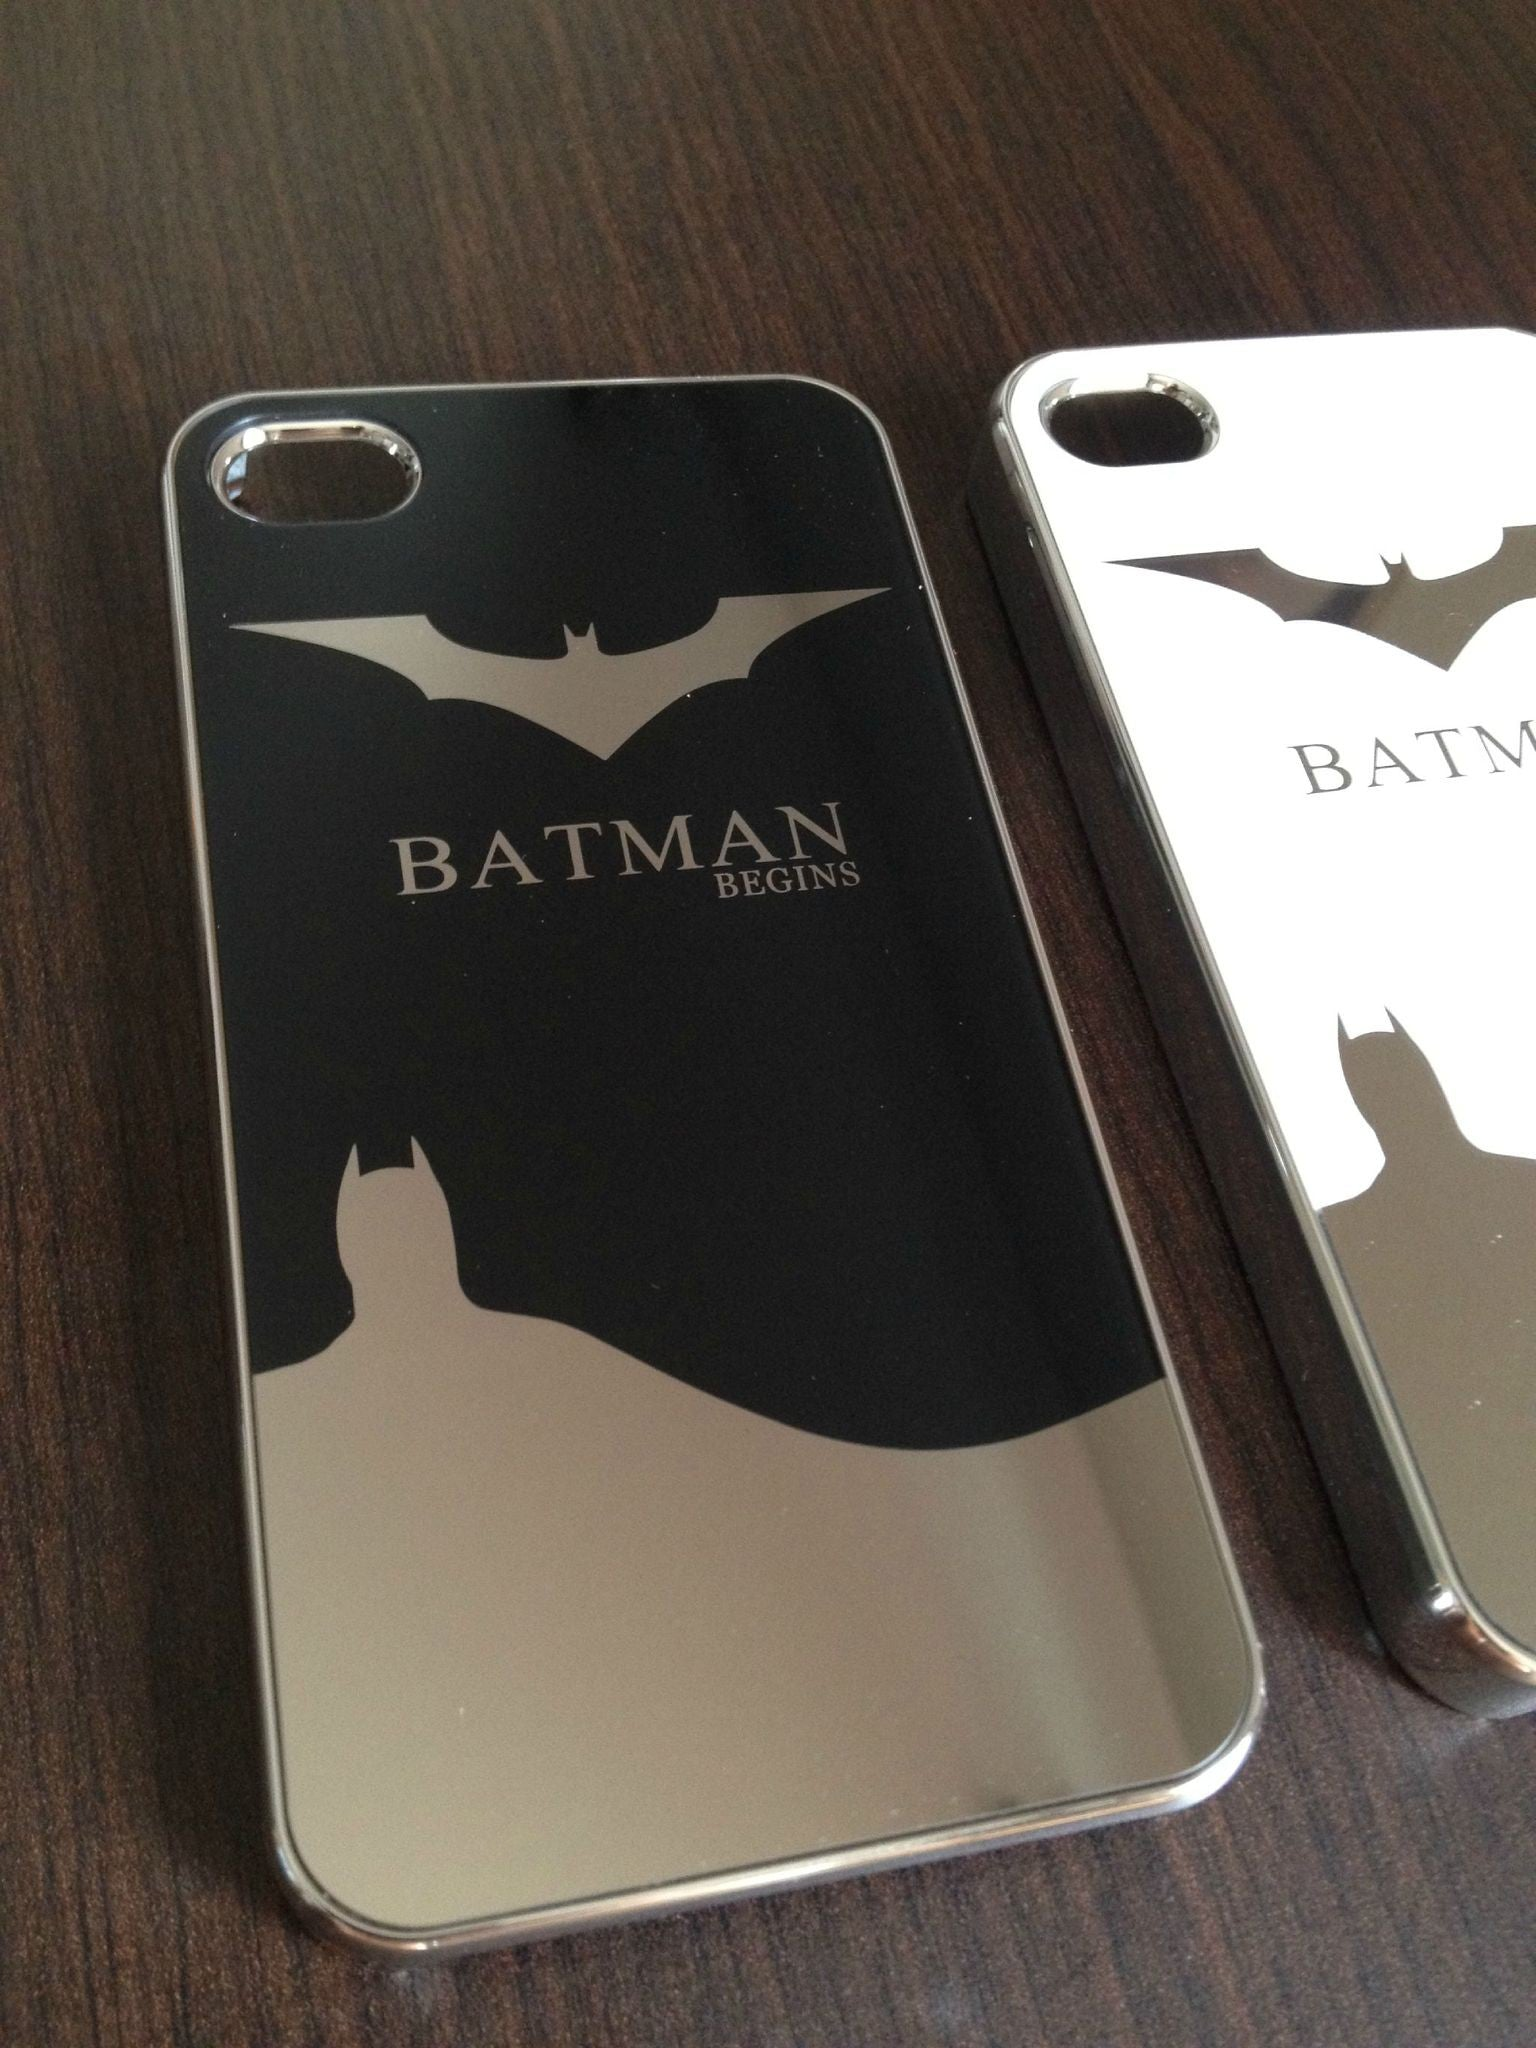 coque 20iphone 204 20batman 274umm a6a14811 53d8 4e1a 837d de16372e9e55 1024x1024@2x